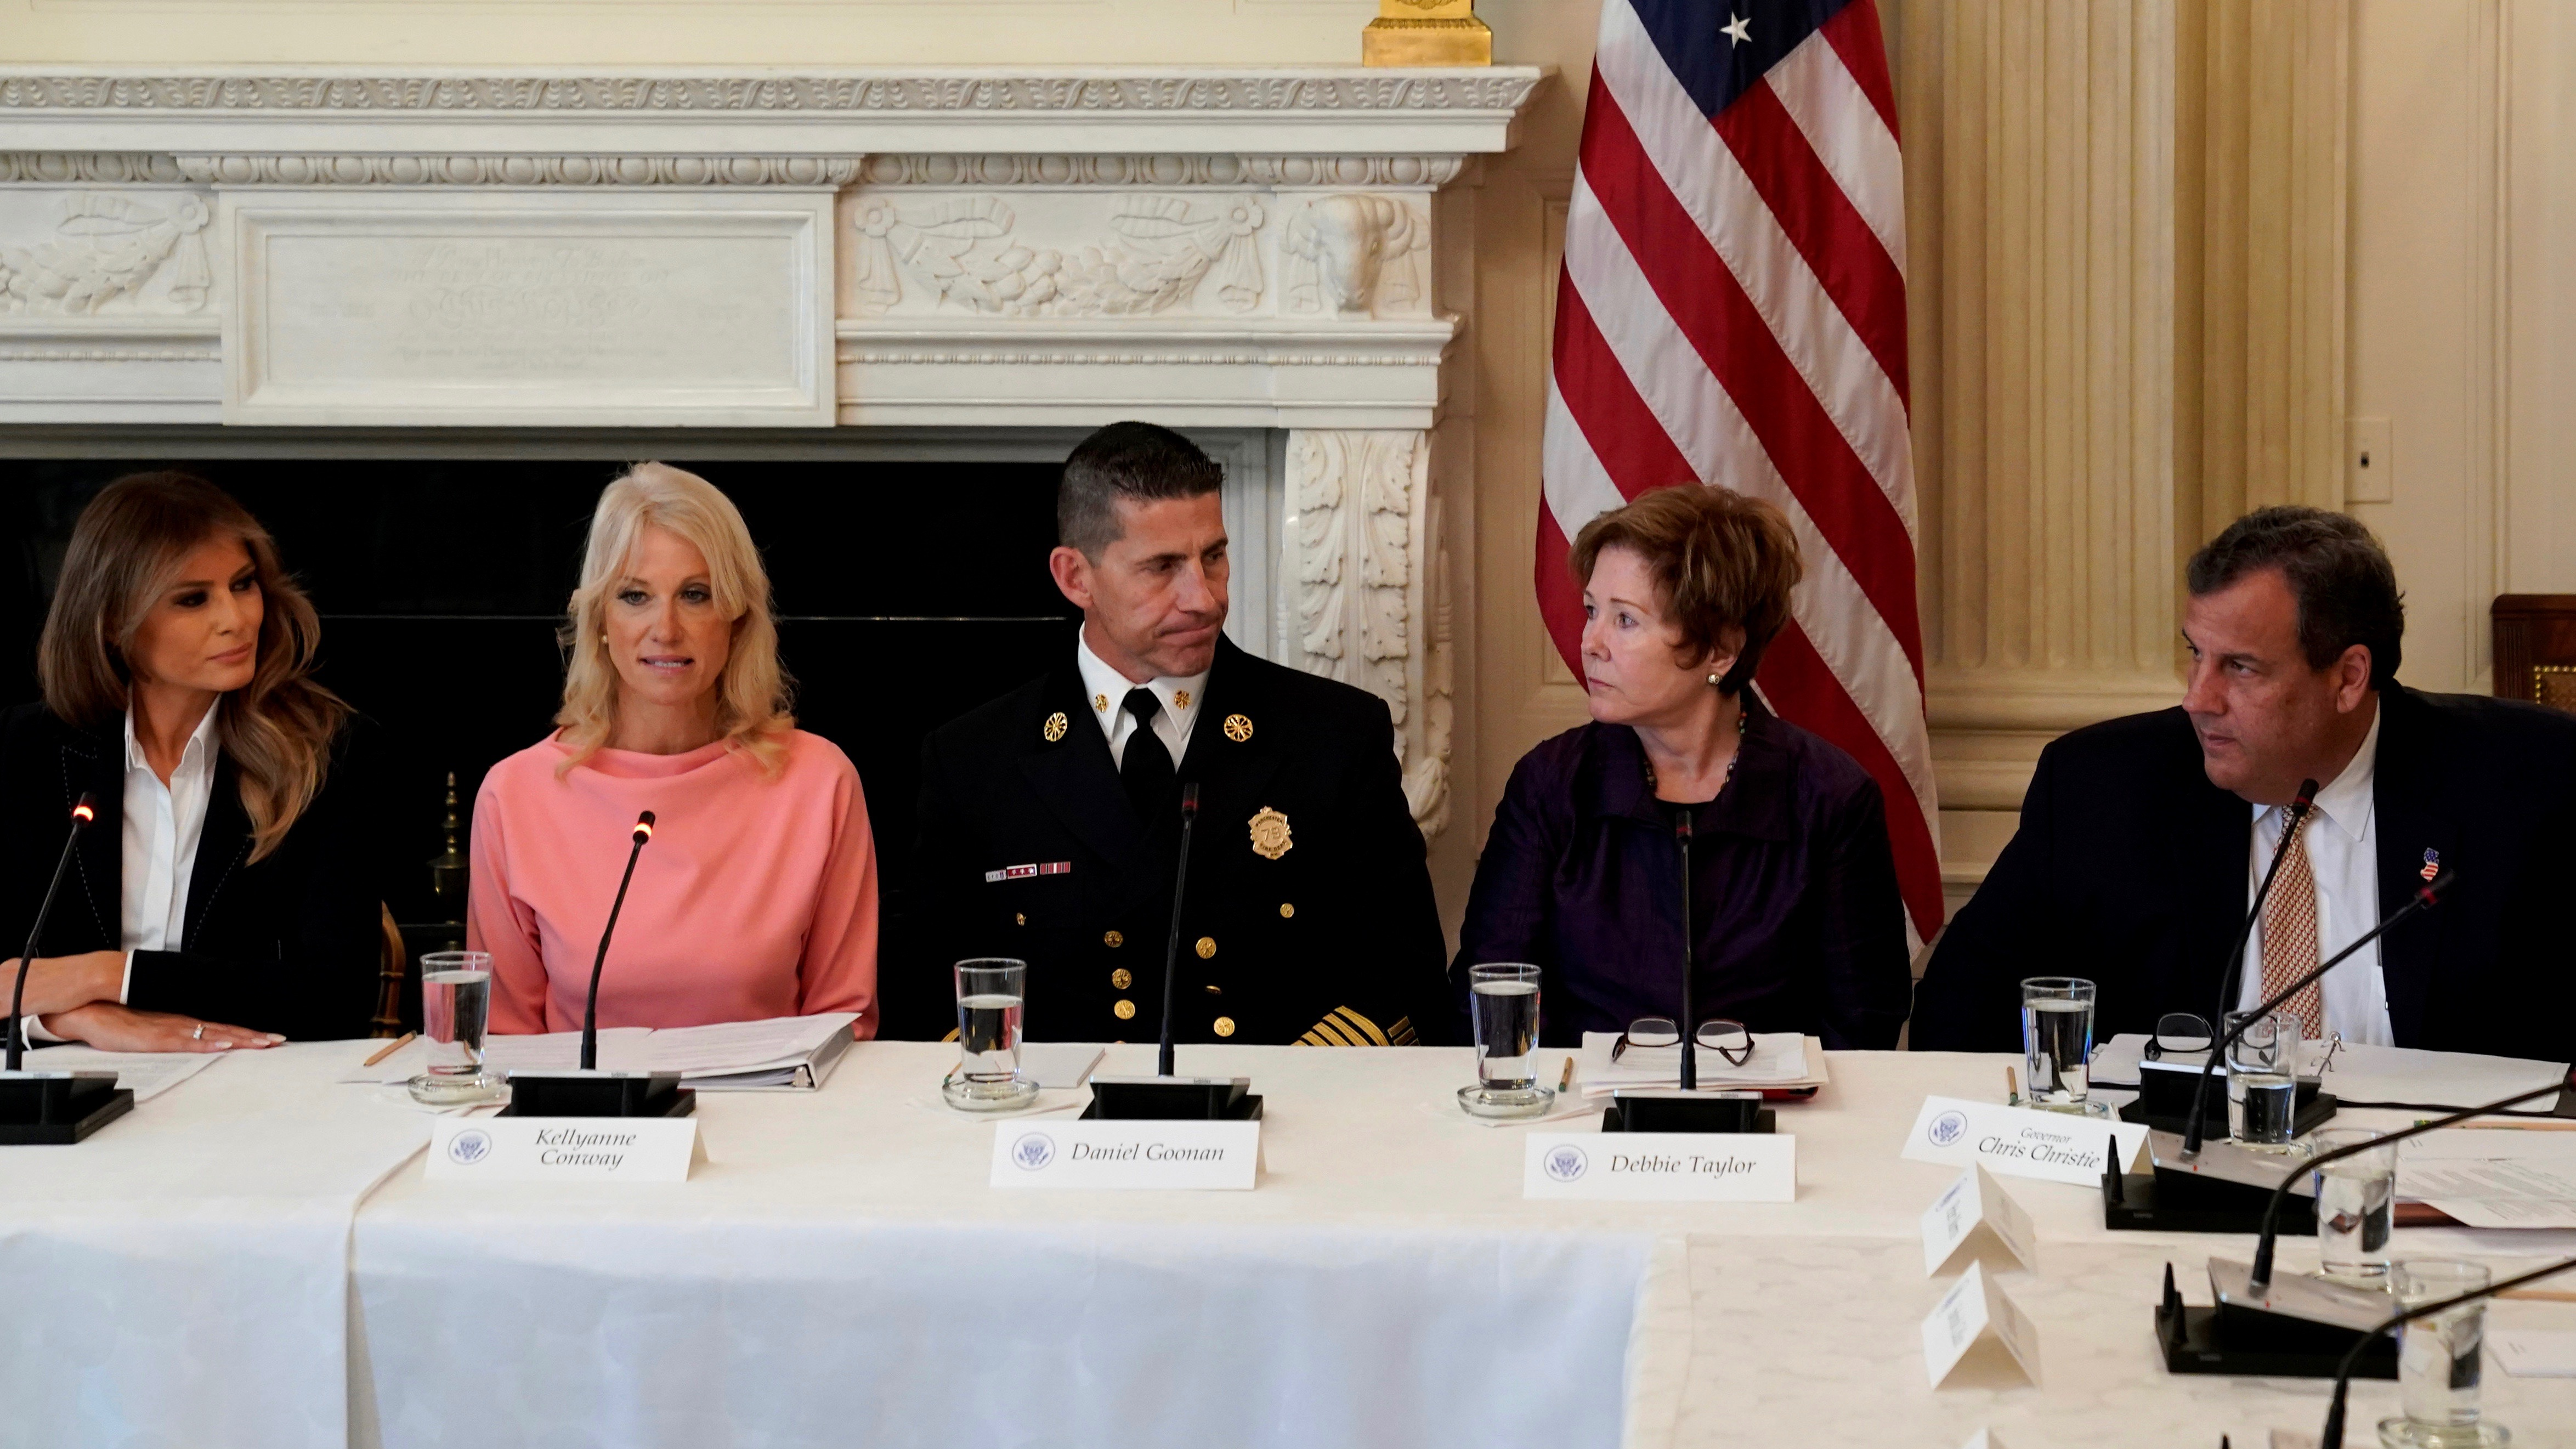 Melania Trump and Governor Chris Christie of New Jersey flank opioid experts in a discussion on the opioid crisis at the White House in Washington on Sept. 28.